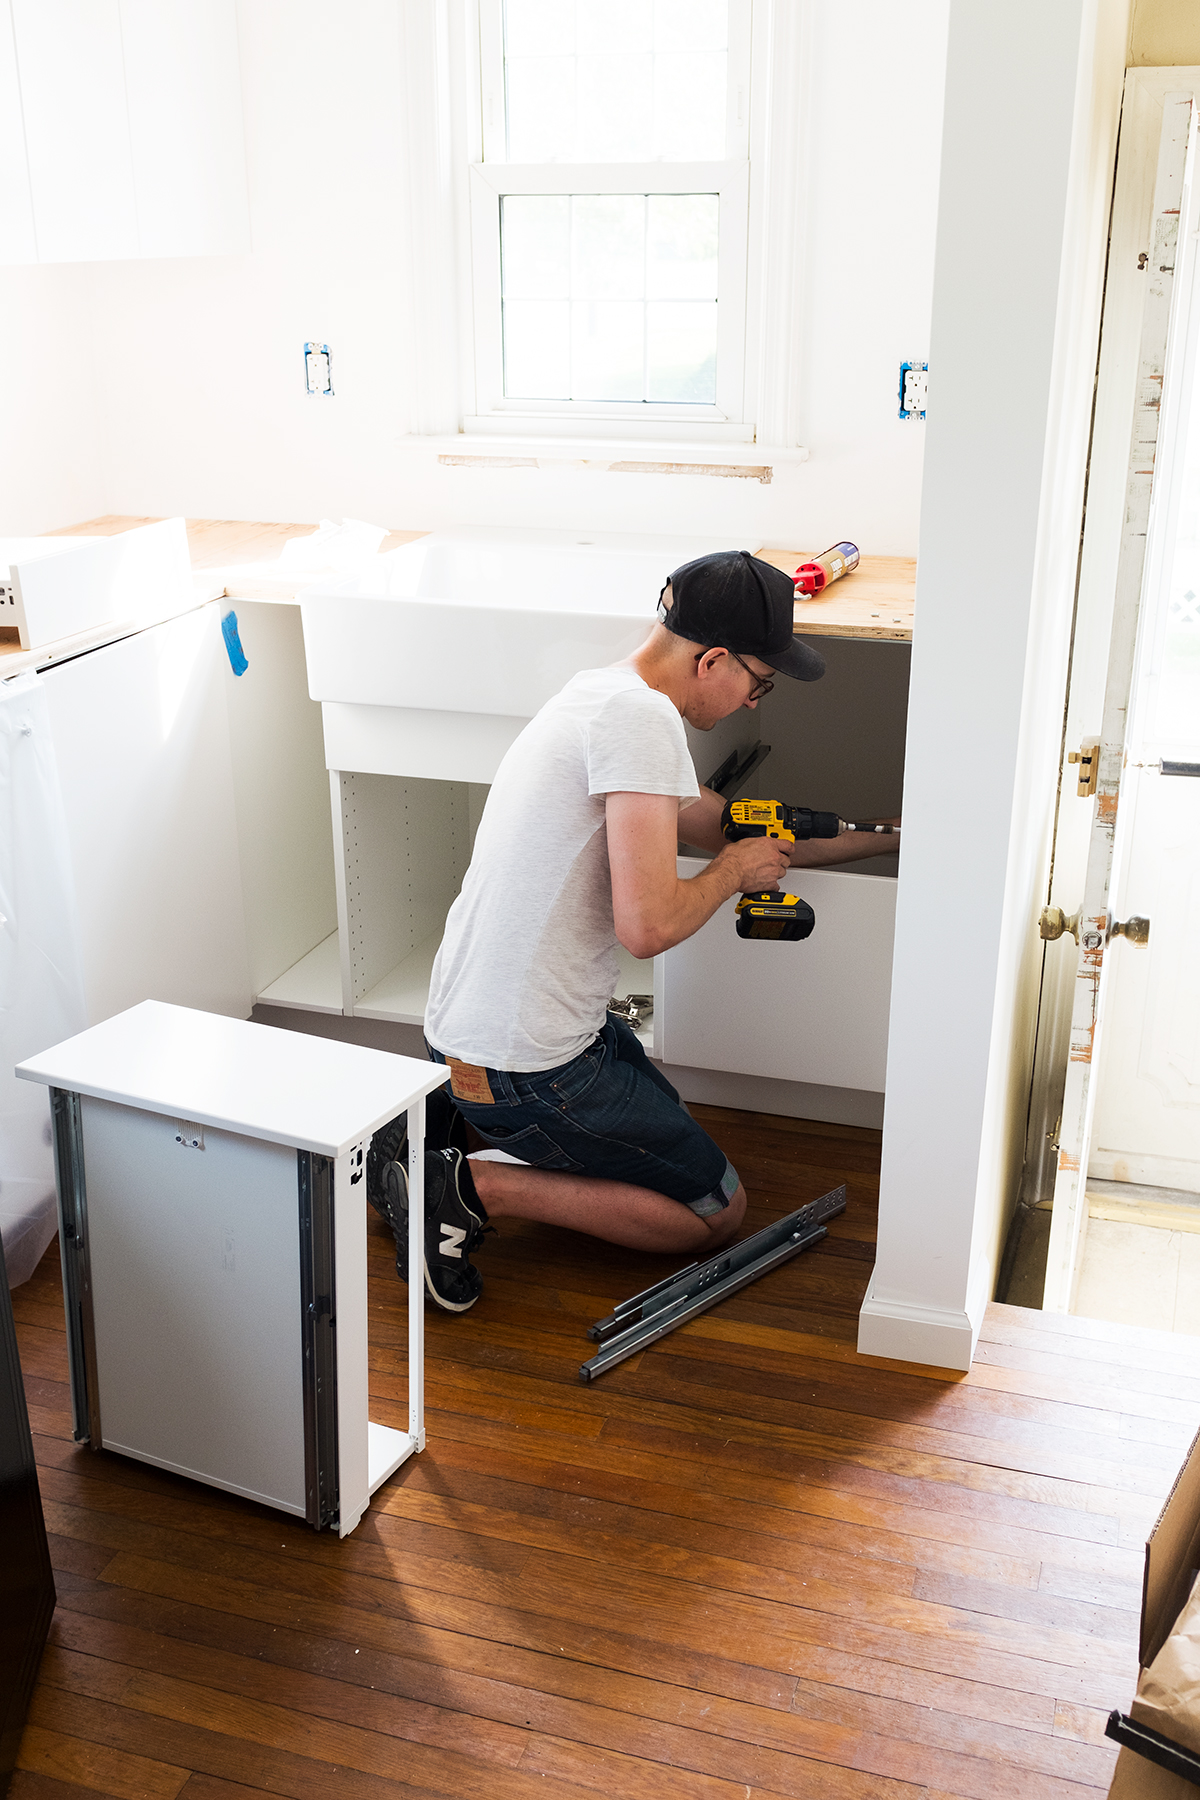 rounding thecorner on our kitchen installation - and some other renovation updates!